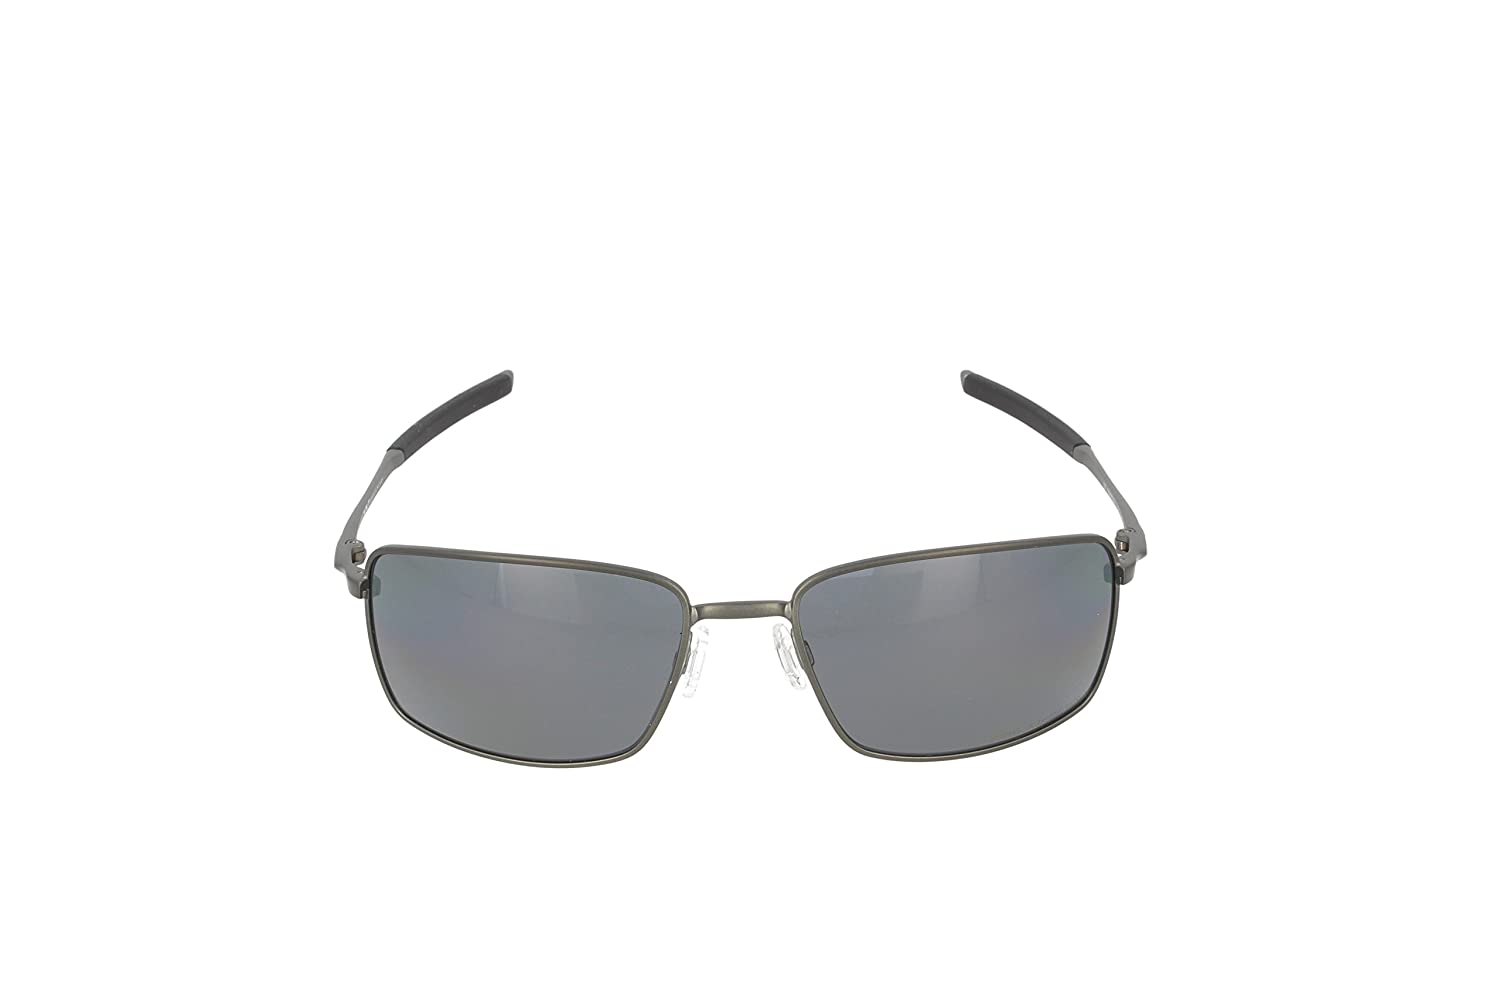 f6baa4535e8 Amazon.com  Oakley Mens Square Wire Sunglasses